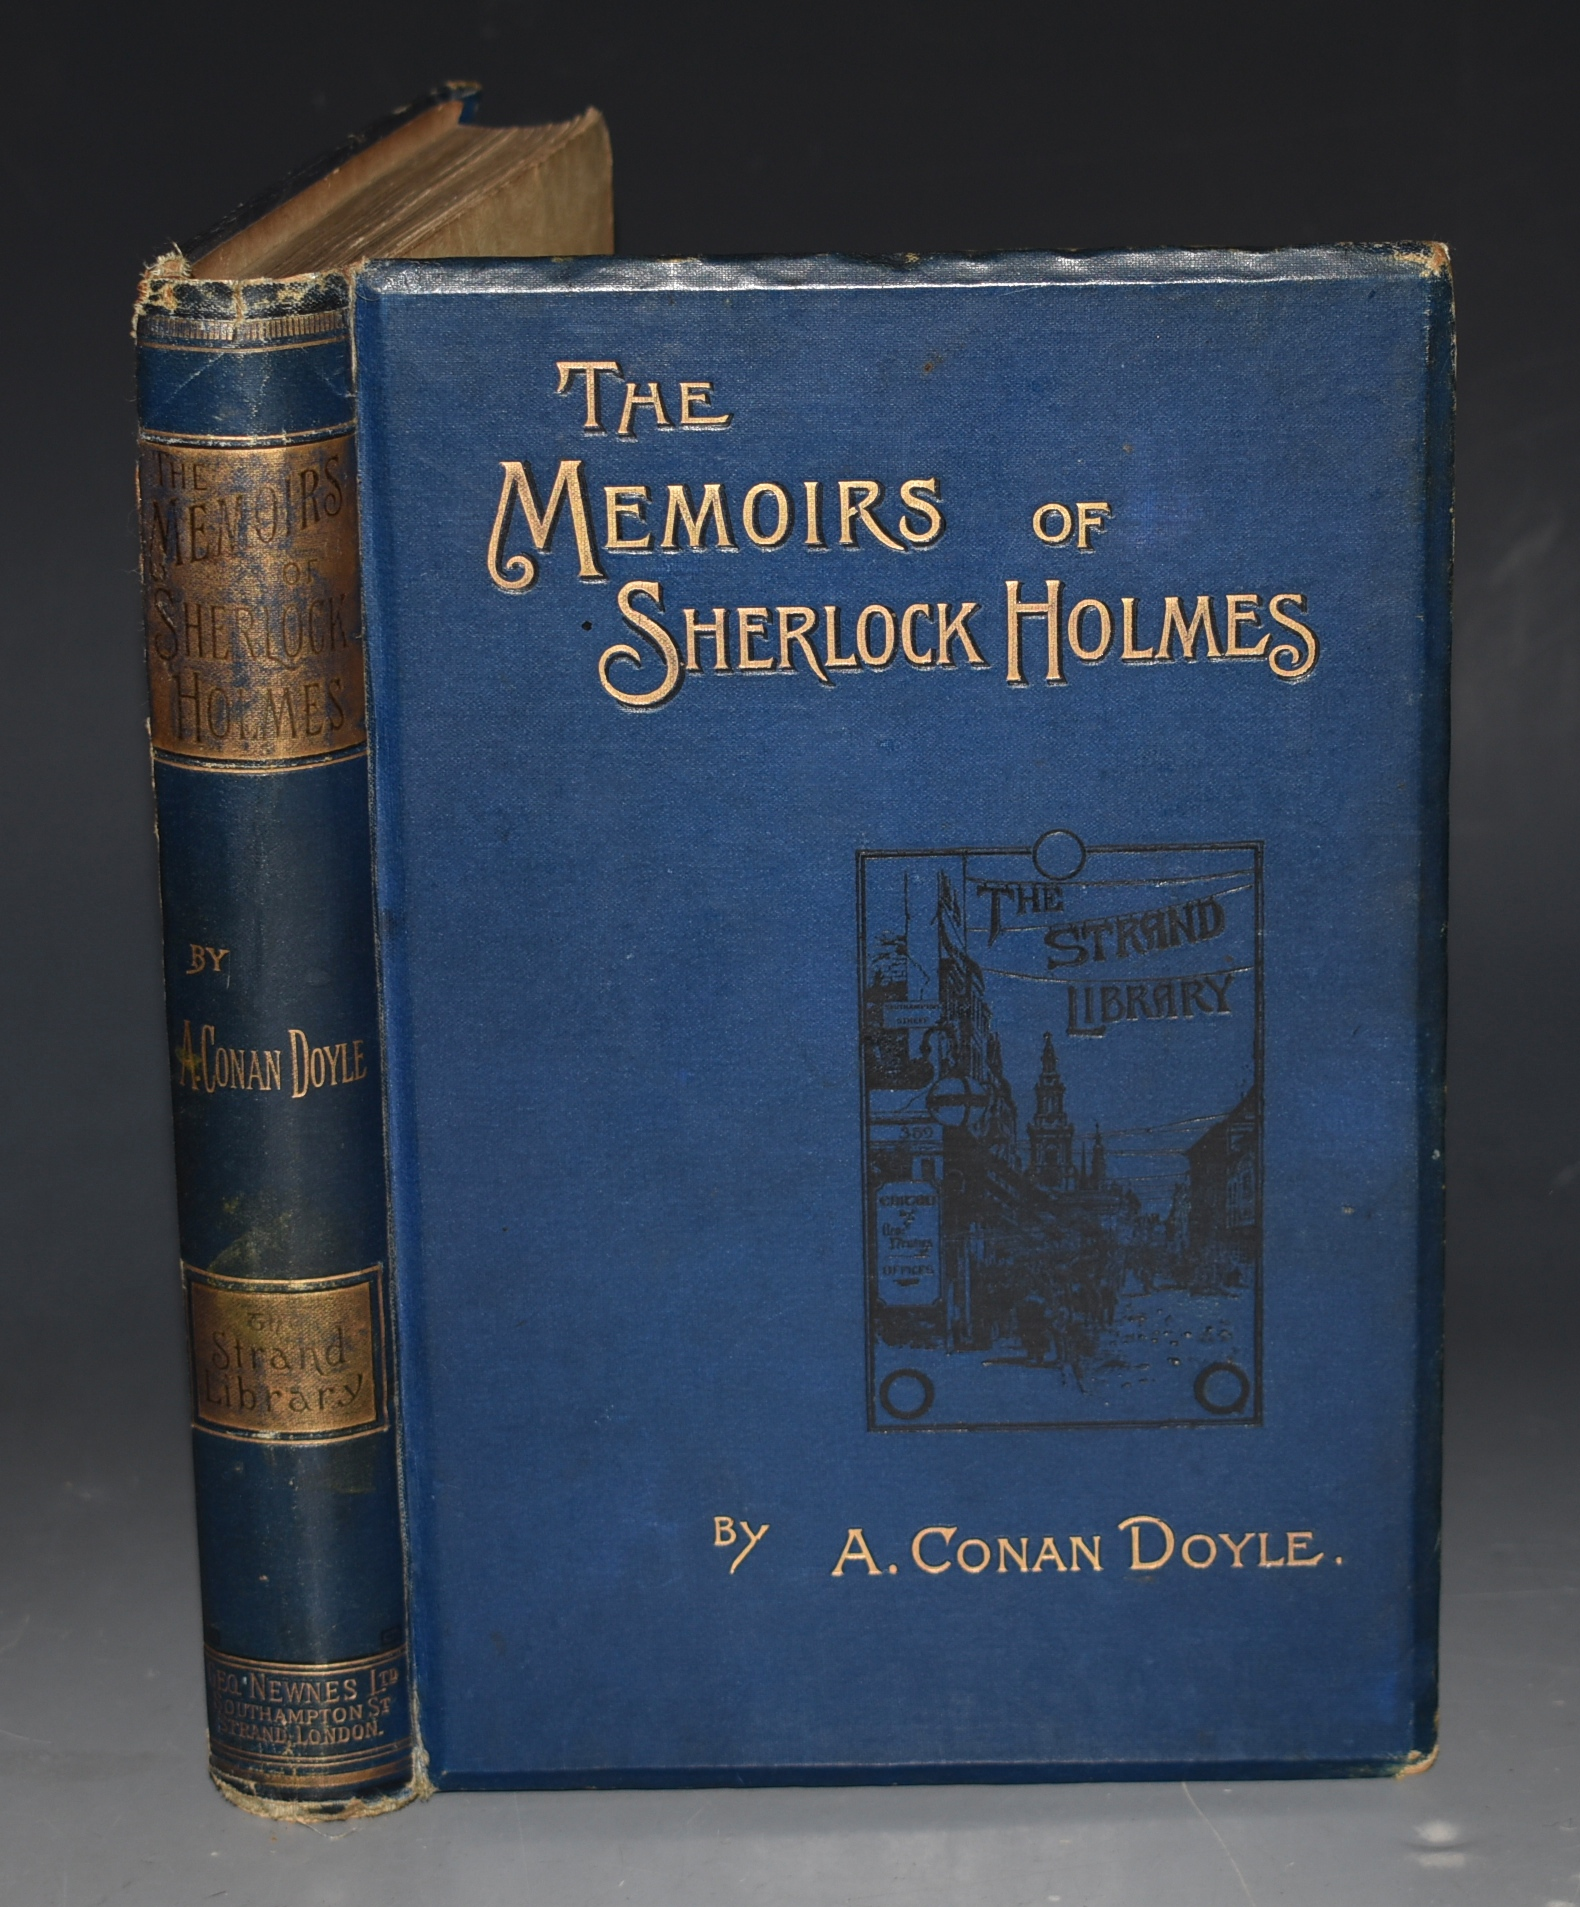 Image for The Memoirs of Sherlock Holmes. Illustrations by Sidney Paget.